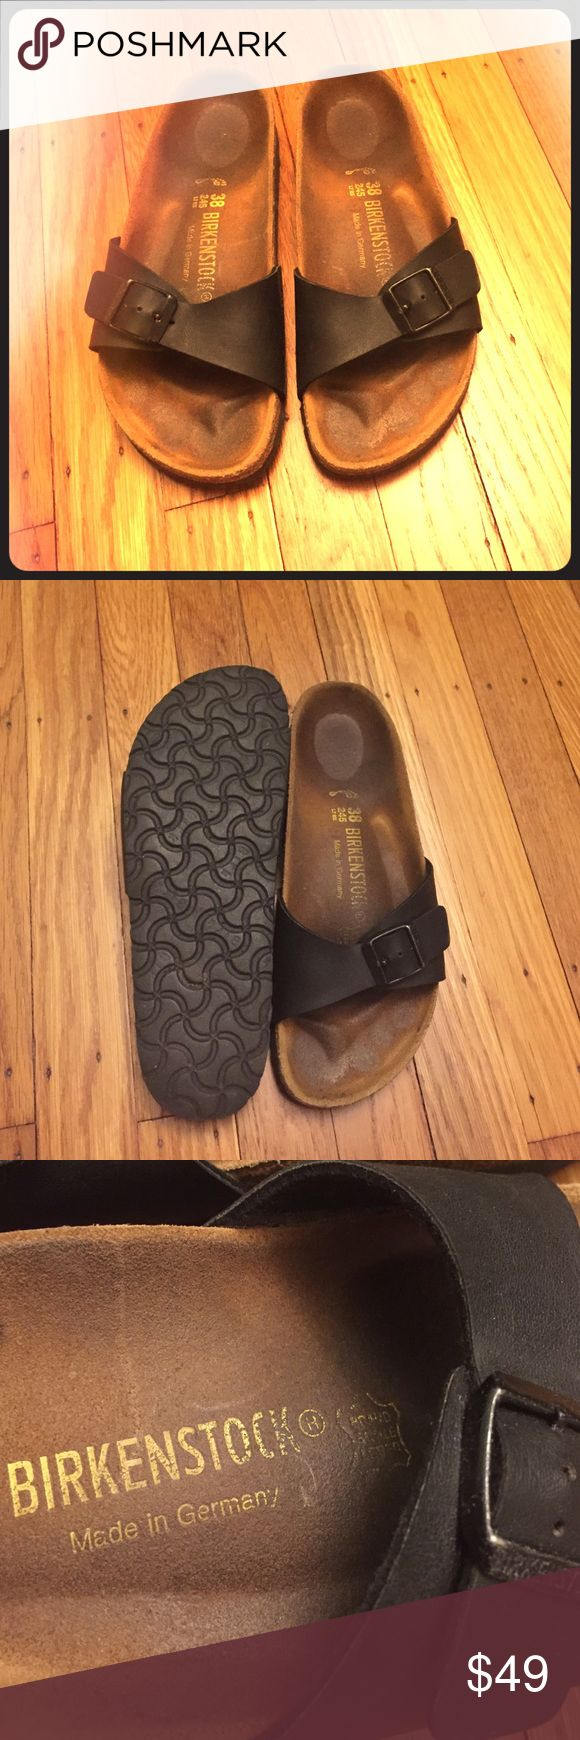 Made in Germany Madrid Birkenstock slippers Great condition, don't show much wear. Stylish and comfy Leather Birks with famous Birko-Floor and rubber sole. Open to reasonable offers!!!✅✅✅ Birkenstock Shoes Slippers